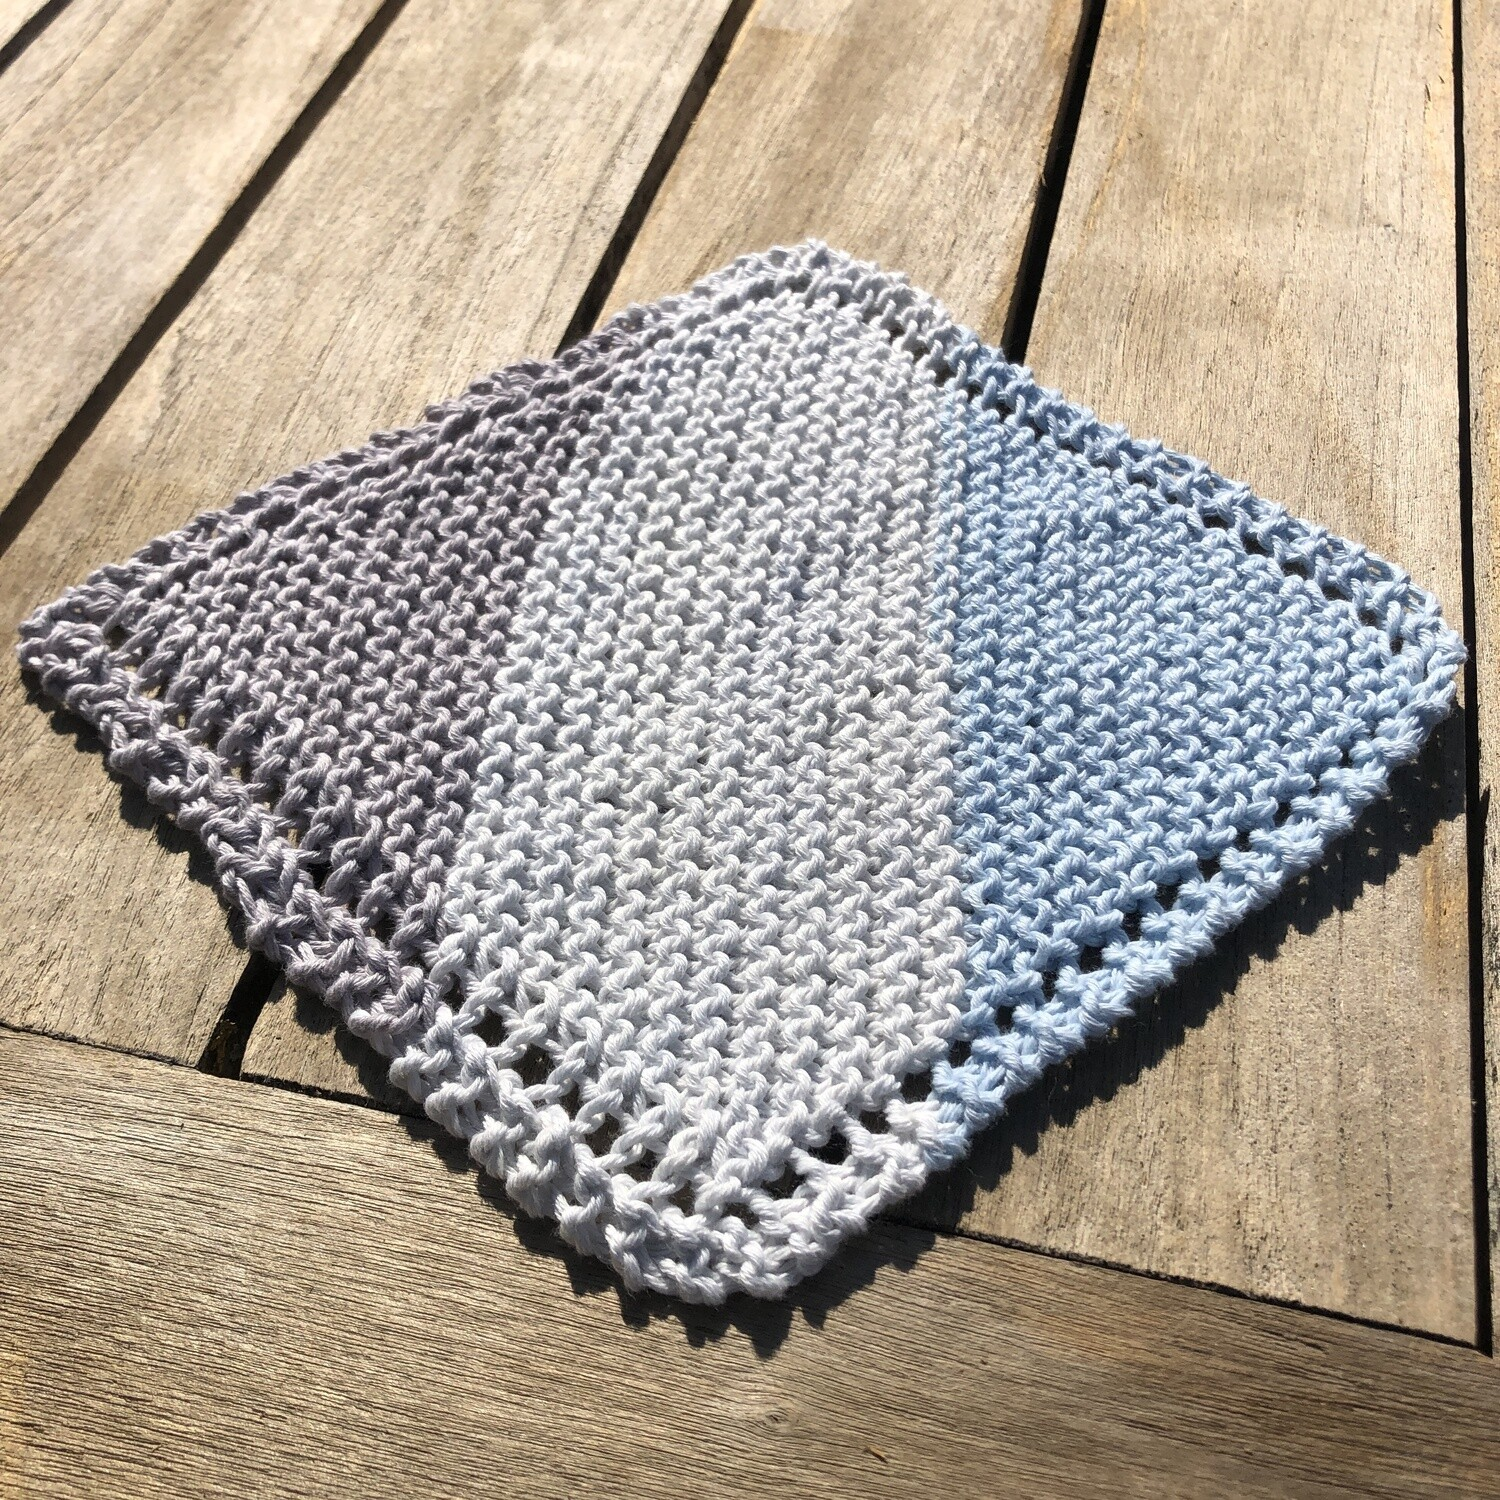 100% Cotton Washcloth - white, sky blue, tan - Hand Knit Classic Design